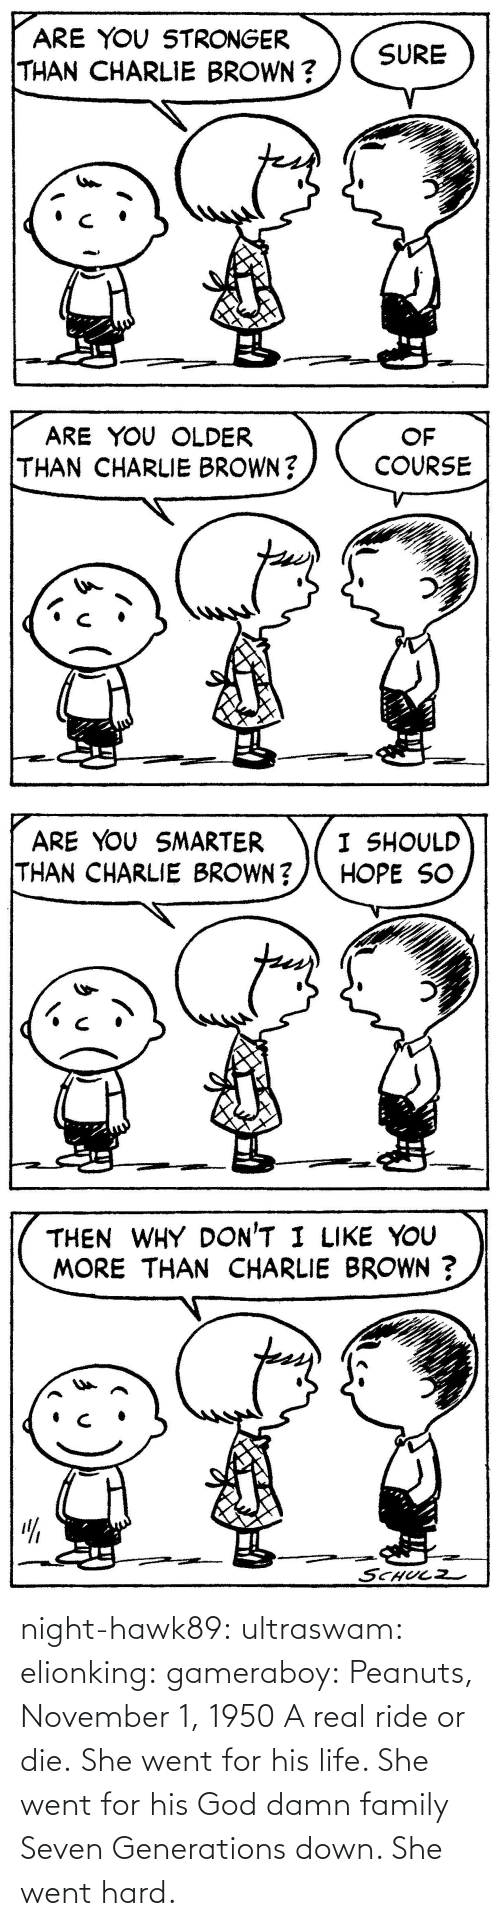 Family, Gif, and God: night-hawk89: ultraswam:  elionking:  gameraboy:  Peanuts, November 1, 1950     A real ride or die.   She went for his life. She went for his God damn family Seven Generations down. She went hard.